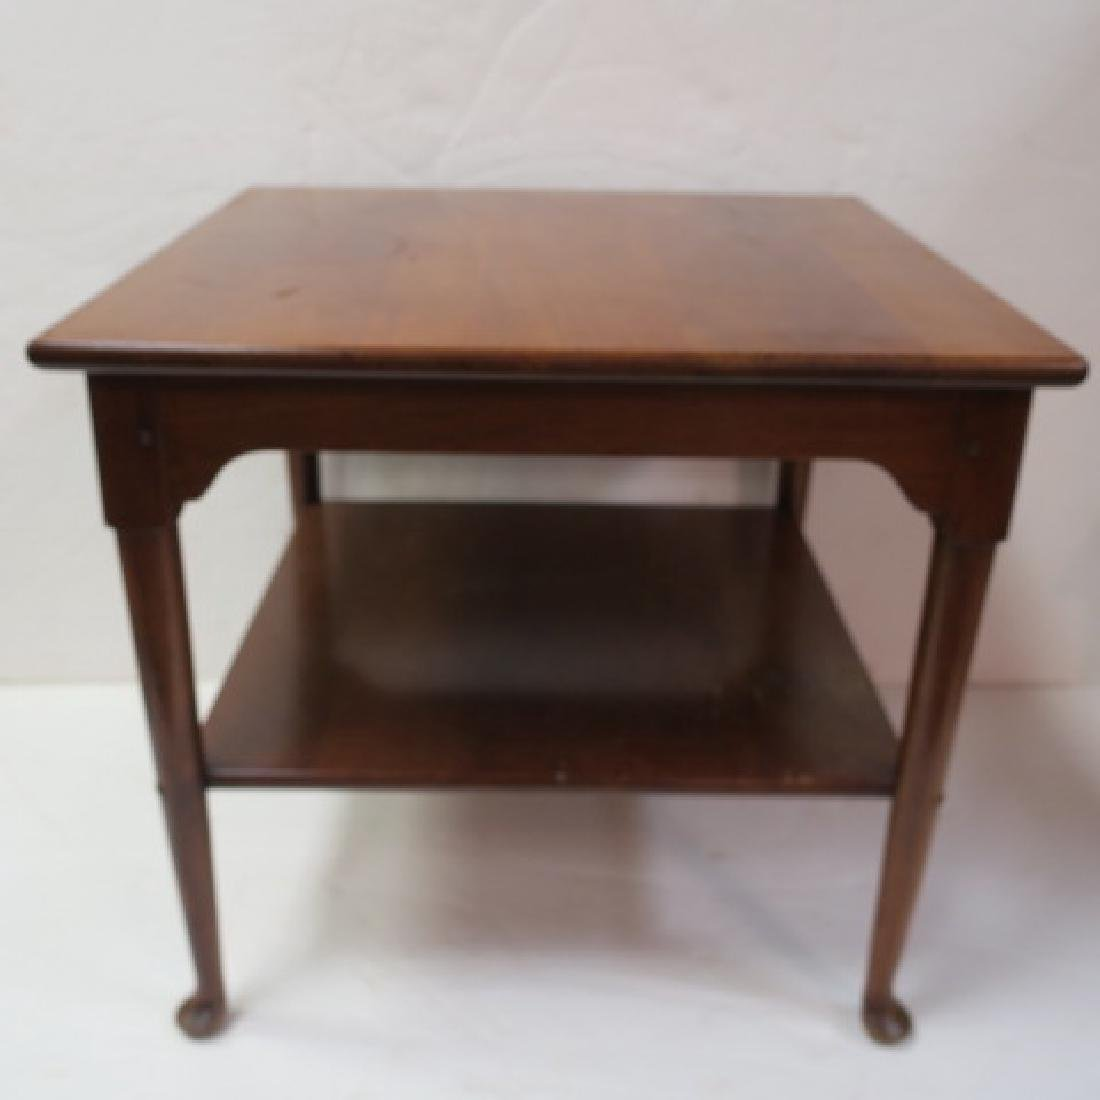 Two L&JG STICKLEY Cherry Valley End Tables: